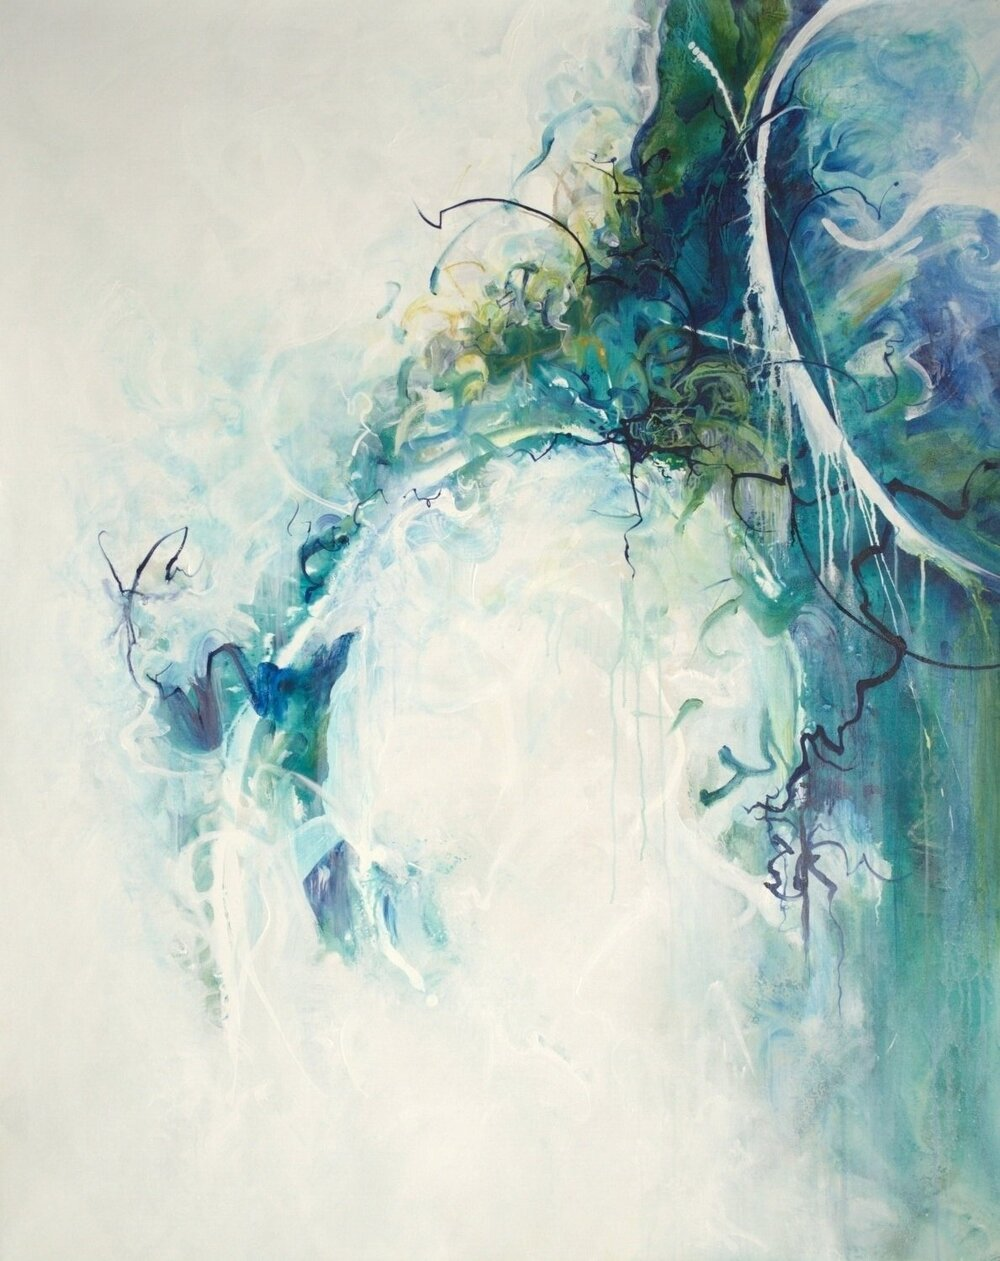 Enchanted Forest in Blues - 56 x 44 - available